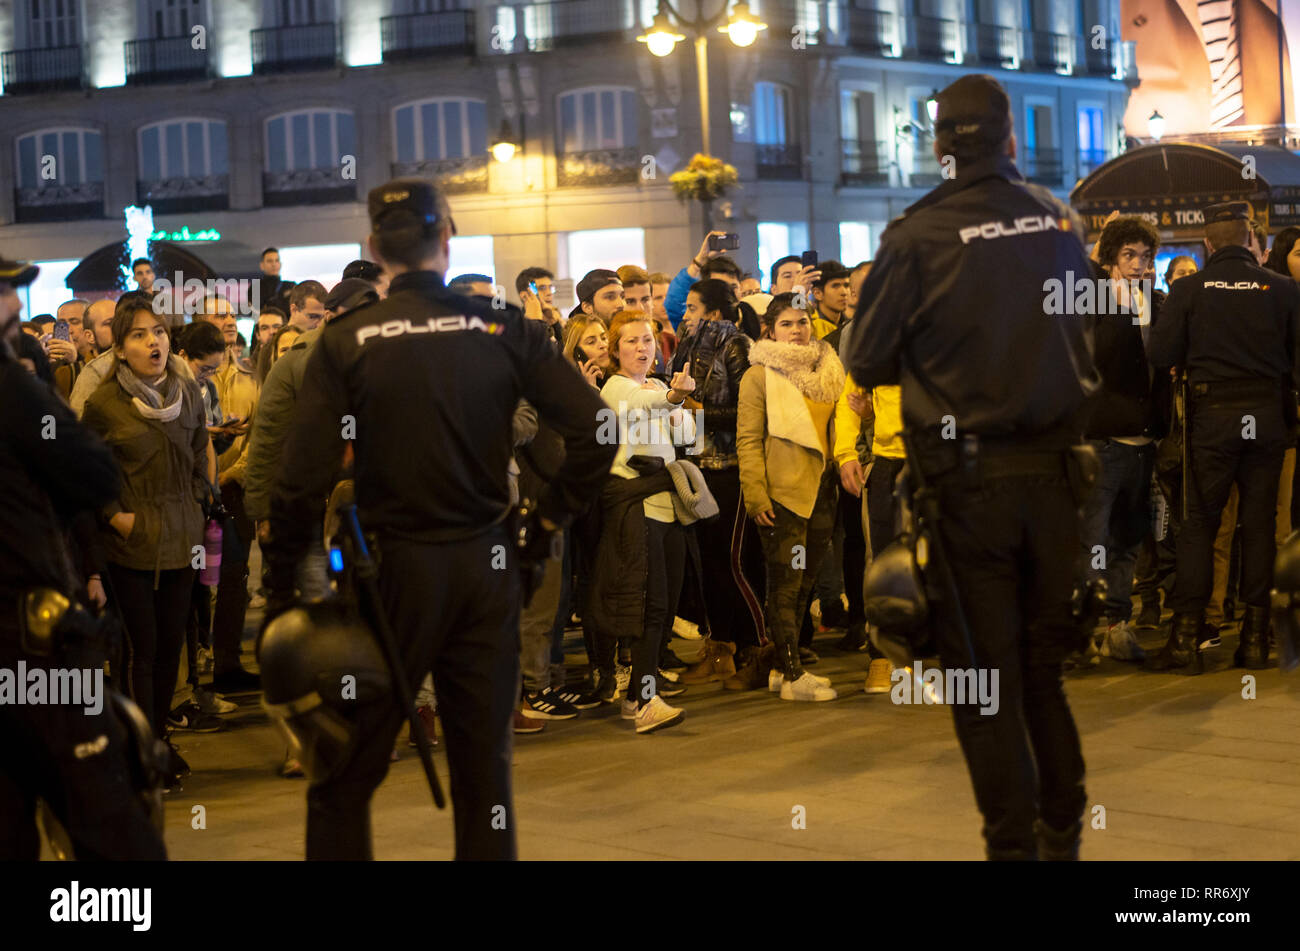 Madrid, Spain. 24th Feb, 2019. Clashes between supporters of Maduro and the opposition took place in Madrid. The origin of the dispute was a demonstration organized by the supporters of Maduro at Puerta del Sol to protest against the intervention of Spain in Venezuela. Venezuelan citizens of the opposition showed up and the intervention of the police was necesary to avoid any stronger confrontations between both parts.  In the picture, the police blocking way of the people against Maduro to avoid further conflicts between both parties. Credit: Lora Grigorova/Alamy Live News - Stock Image